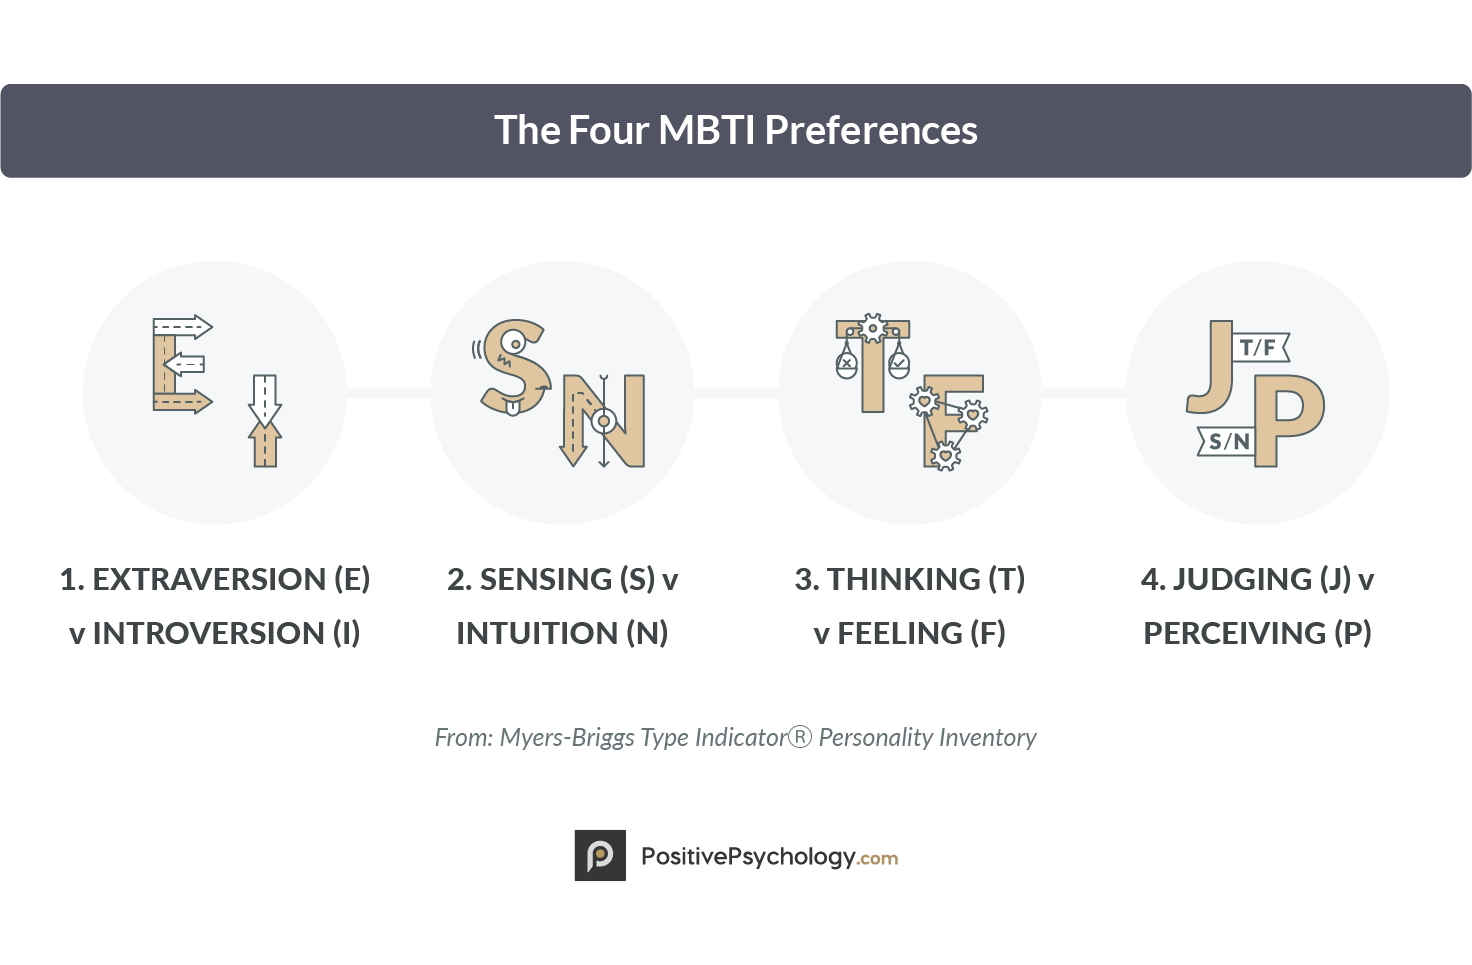 The Four MBTI Preferences